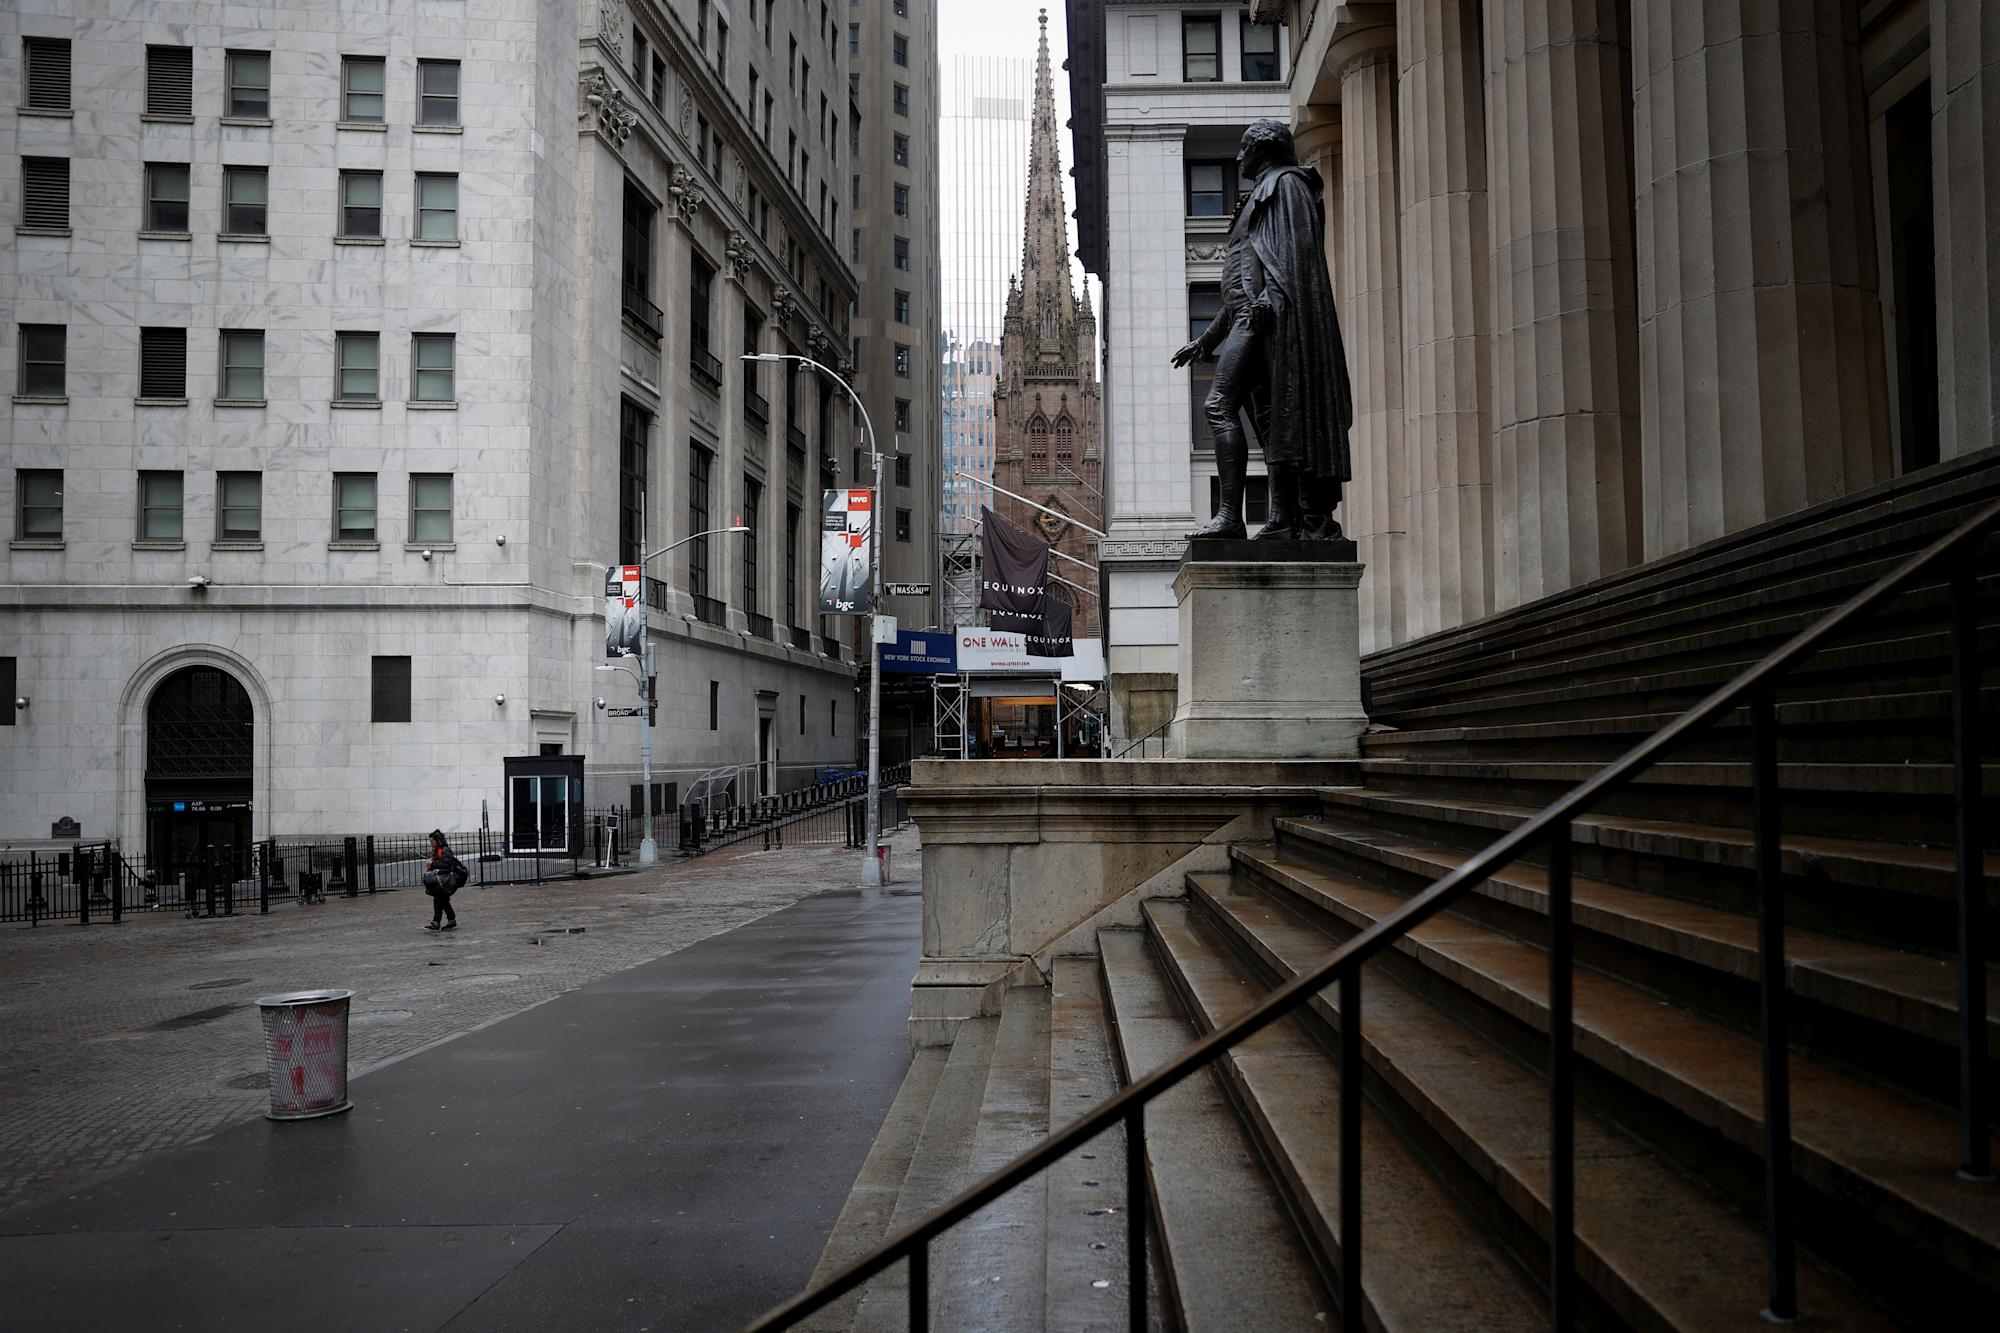 Stock futures opened lower Tuesday evening on the heels of another day of losses for equity investors, with the S&P 500 and Dow slipping further below last...